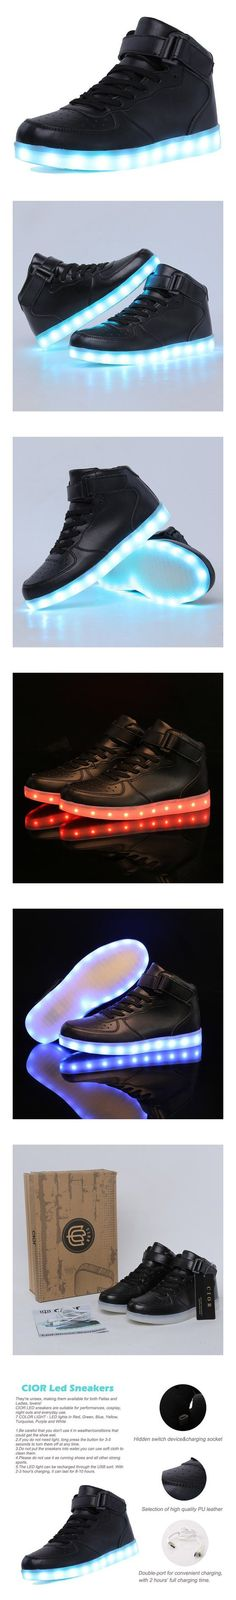 CIOR Mens Womens Boys Girls 11 Colors Led Sneakers Light Up Flashing Shoes For Halloween,101B,01 #shoes #cior #2016